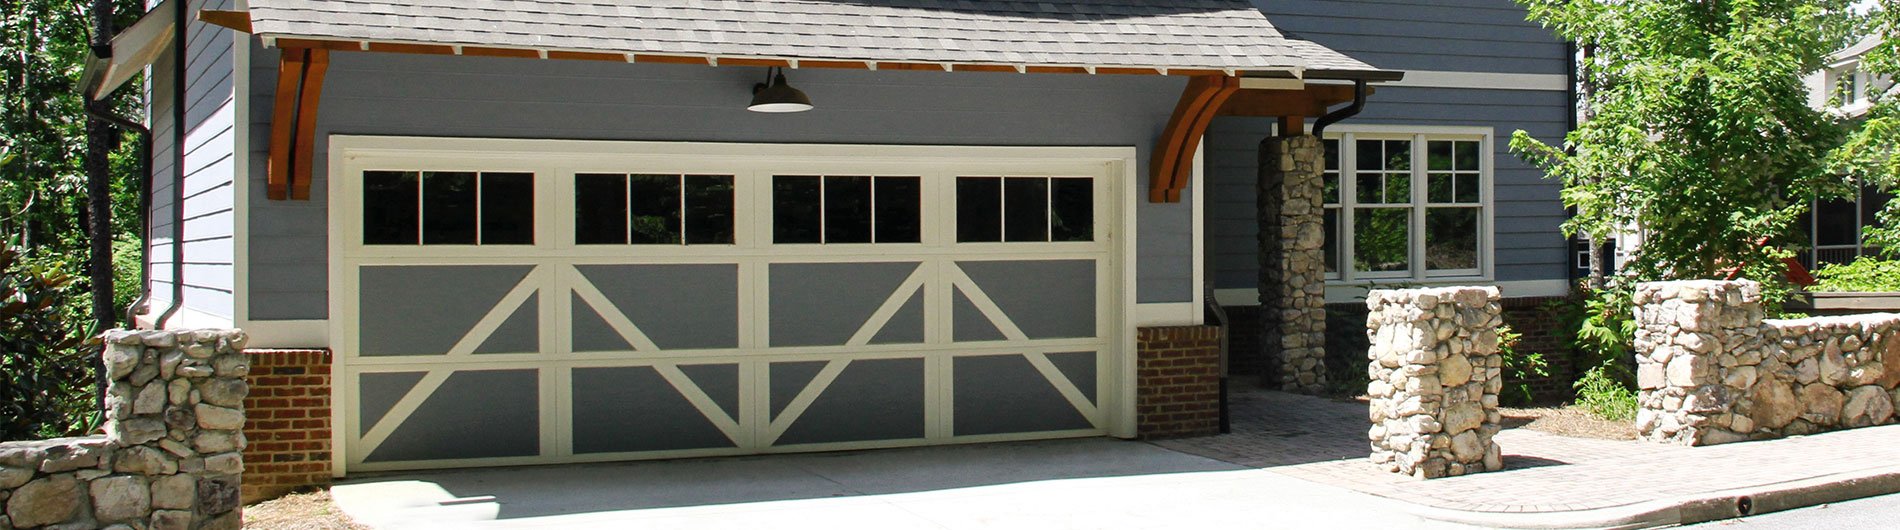 Energyefficient Garage Door  Madison WI  Northland Door Systems  Northland Door Systems